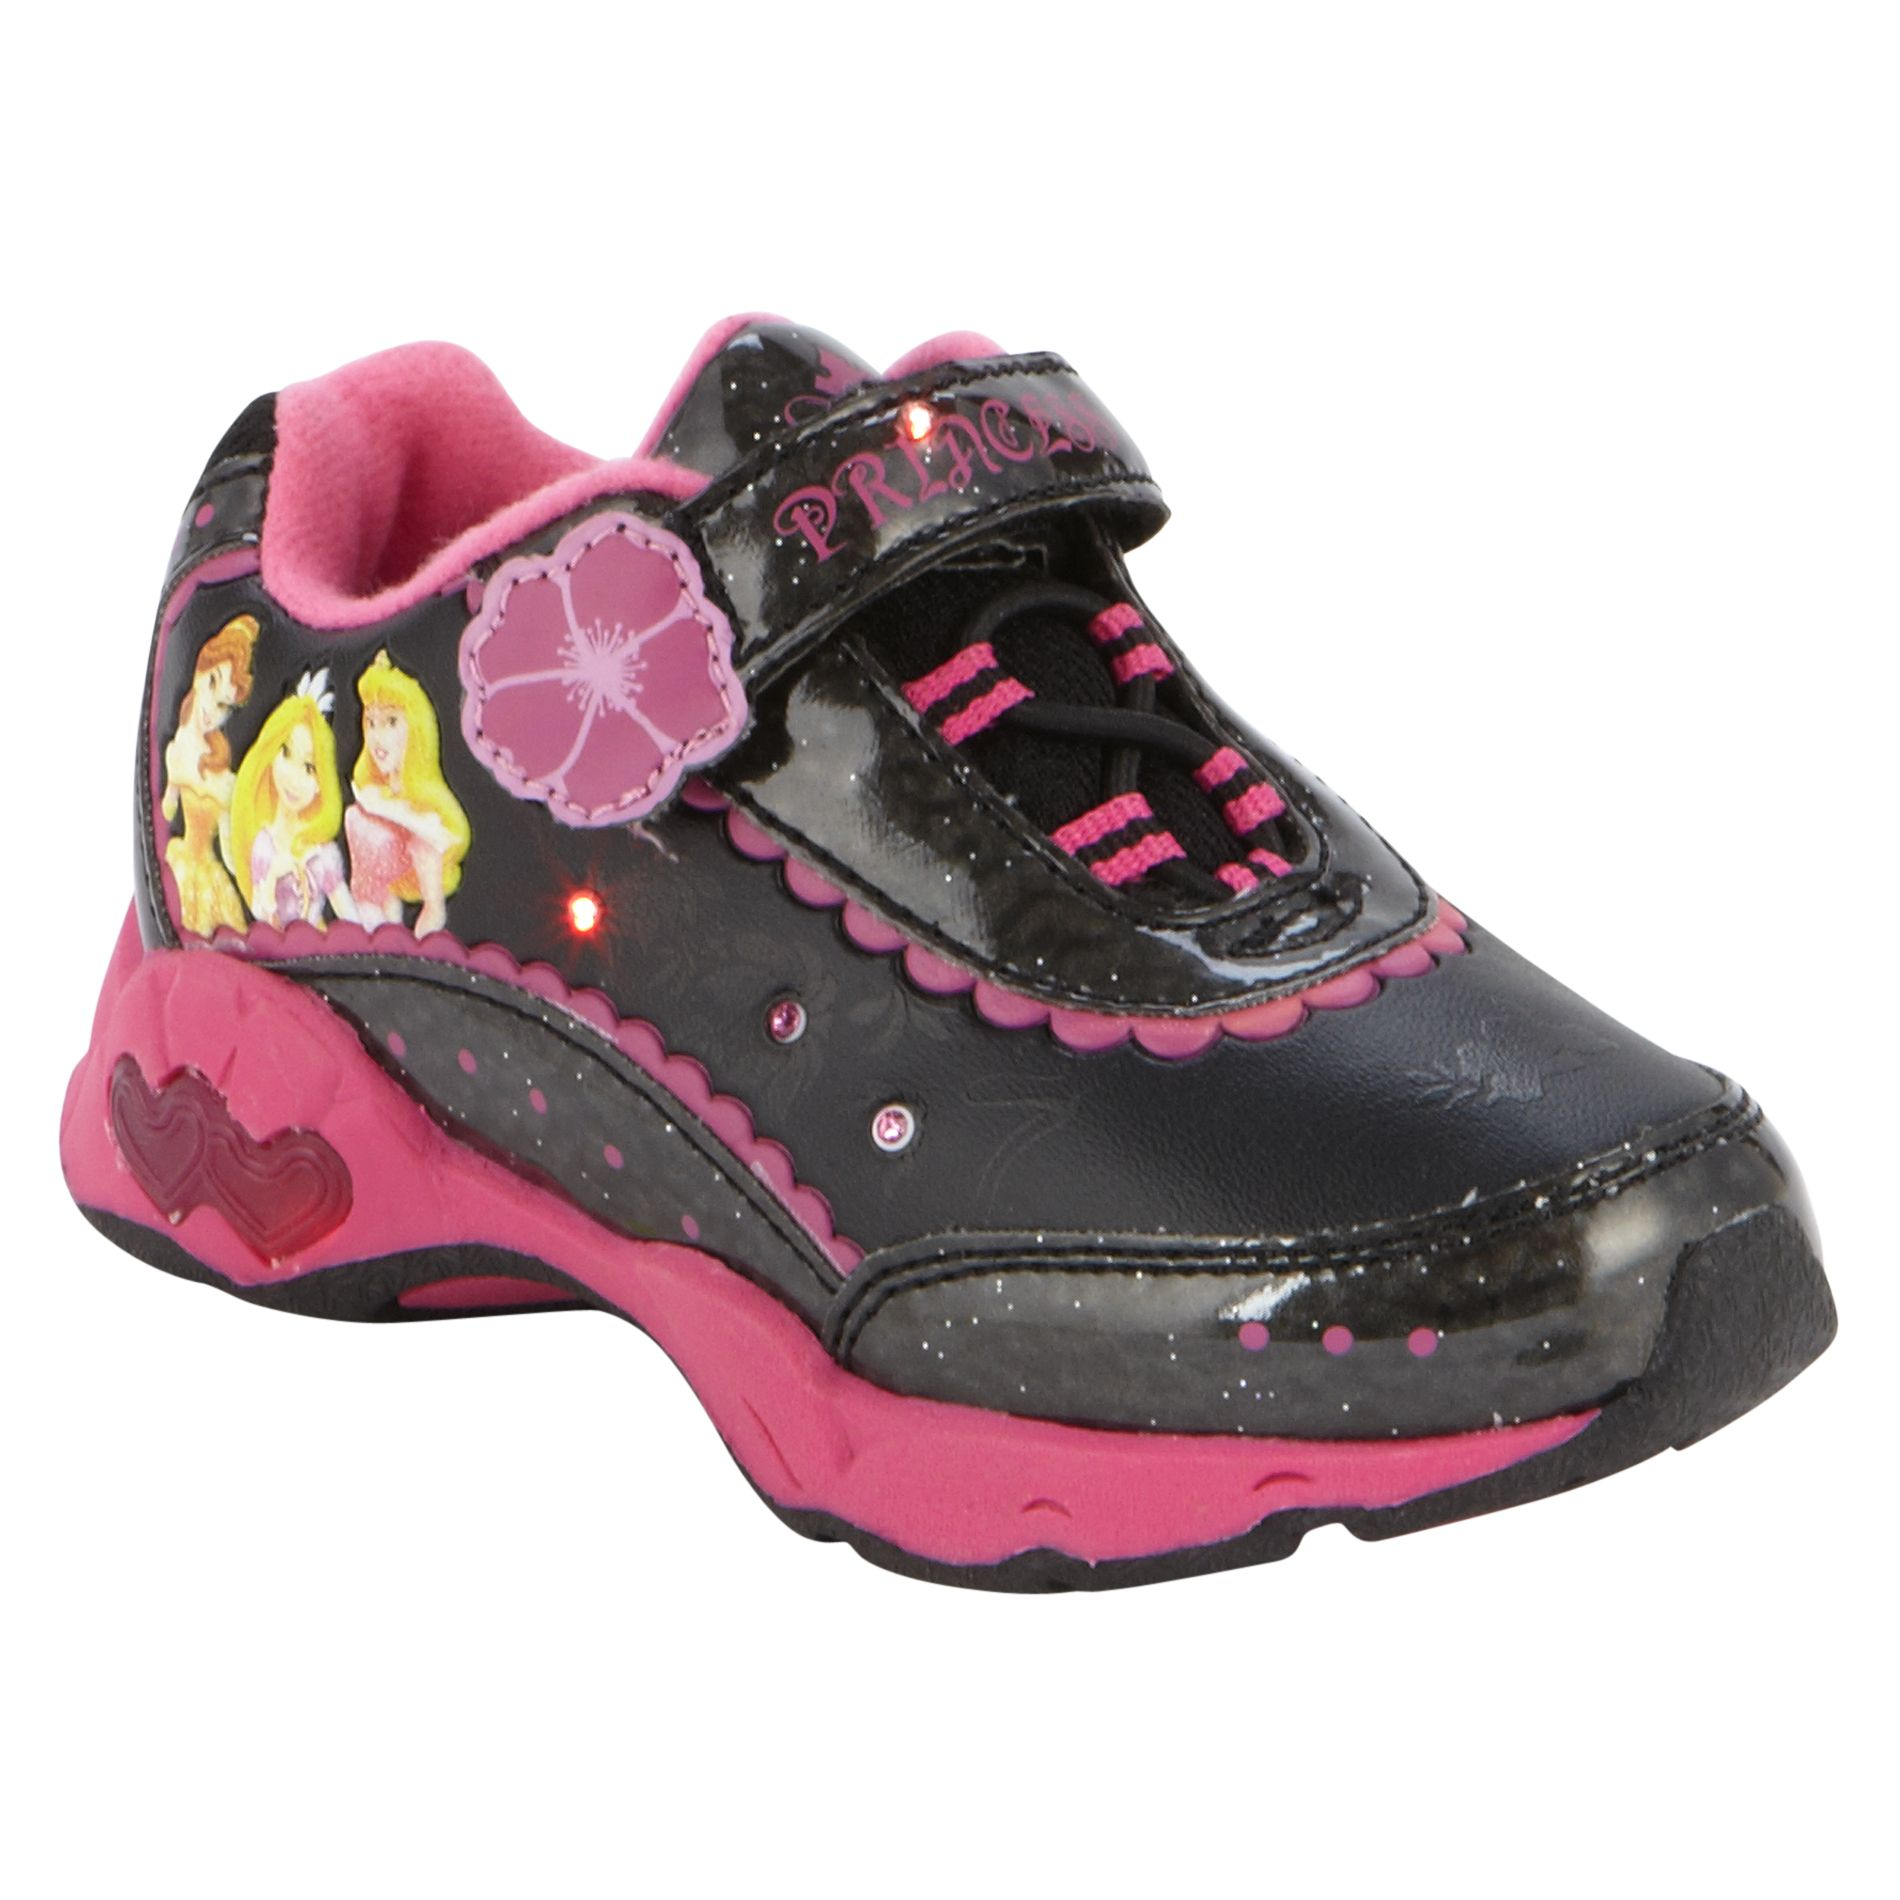 Toddler Girl's Princess Athletic Shoe - Black